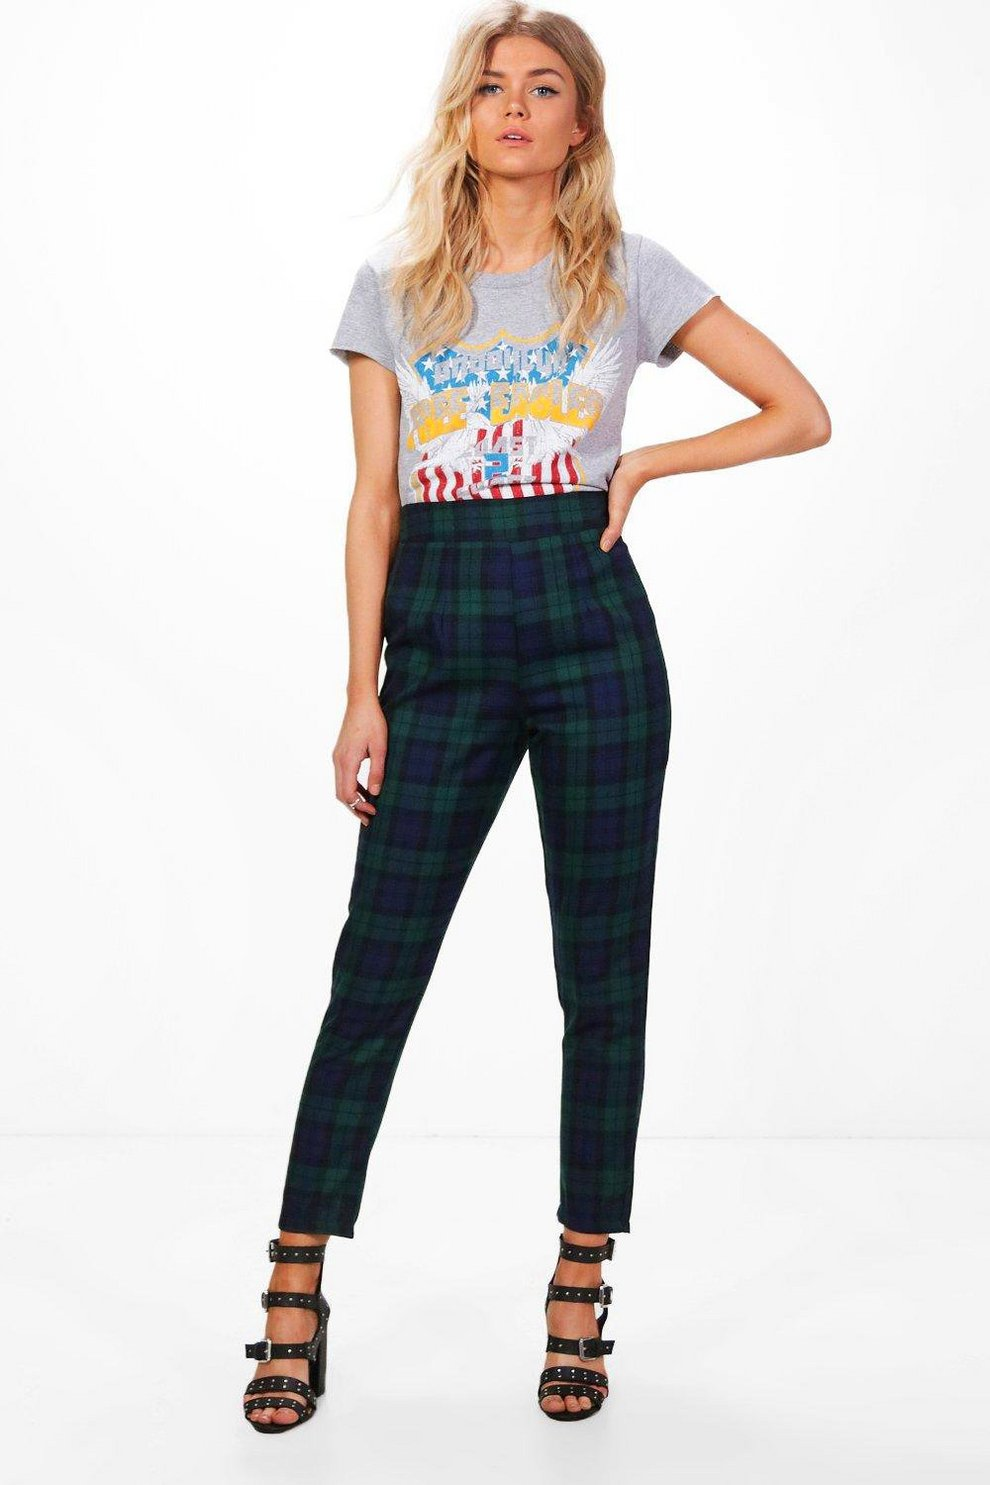 Boohoo Check High Waisted Trouser Shop For For Sale Outlet For Sale Sale Recommend Cheap Visit New Order For Sale rDG06uN